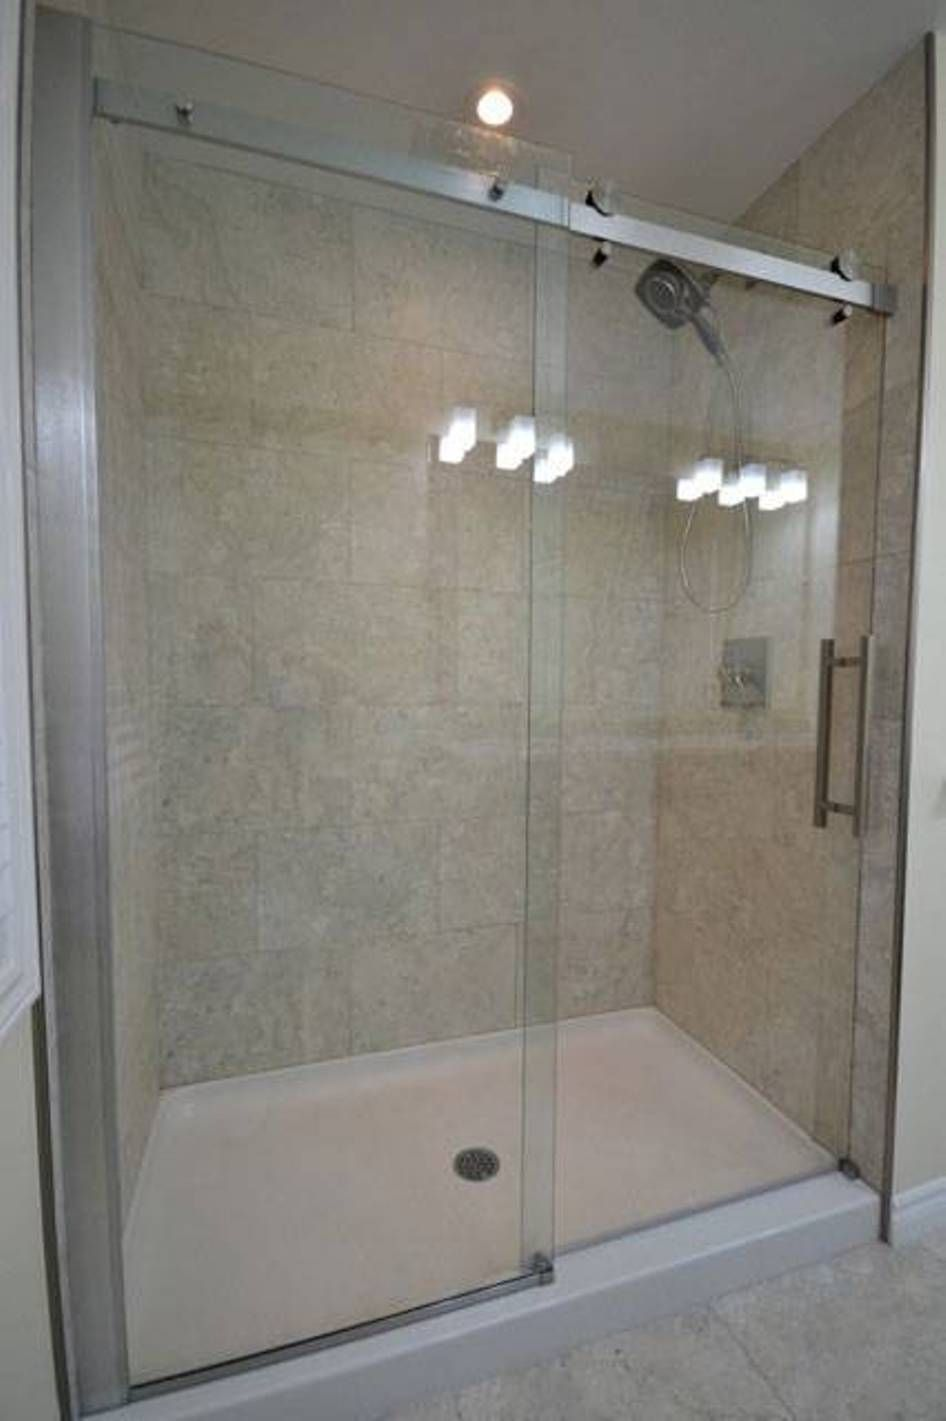 Shower Pan With Sliding Glass Door In Bathroom · Tiled ShowersShower  TilesShower DoorsHow To Tile A ...